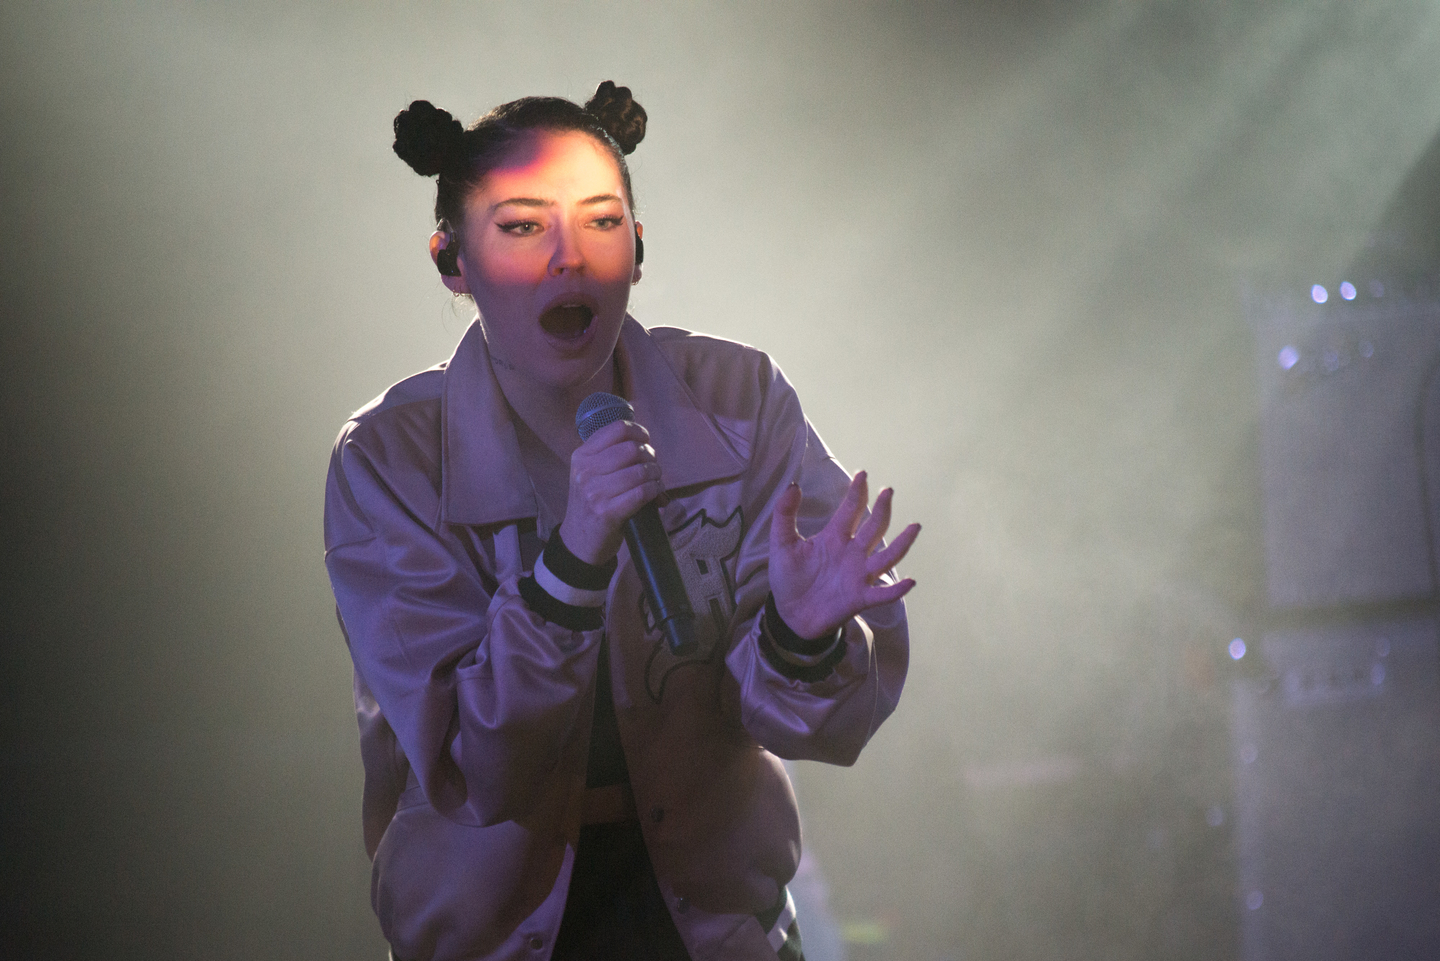 Bishop Briggs, presented by SoundExchange Sessions. Photo by Karl Capelli